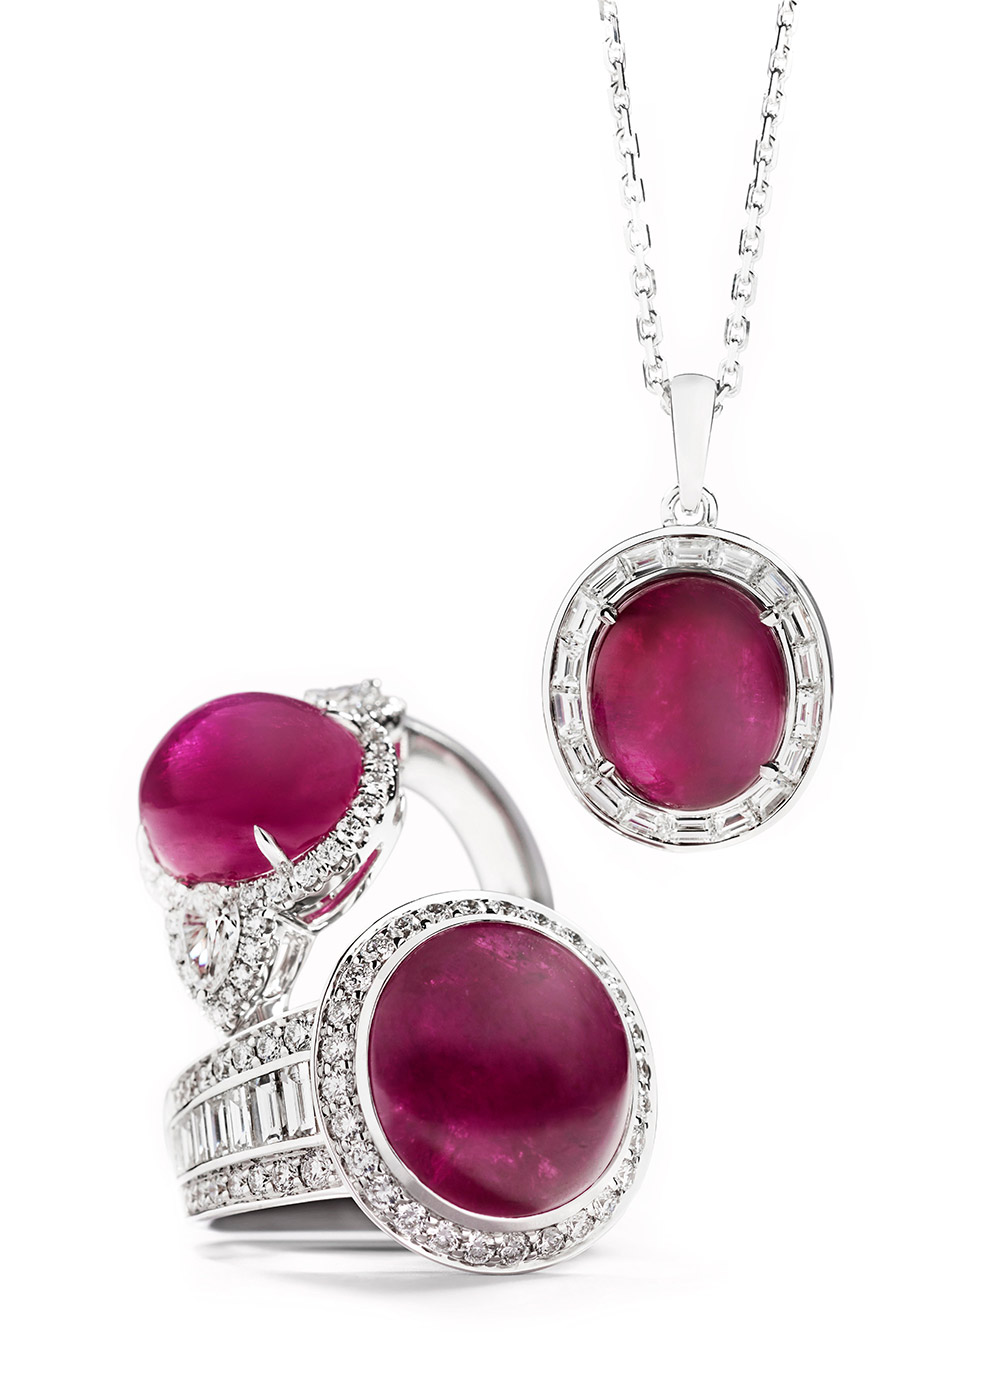 Hartmann's rings and a pendant from the collection with Greenland rubies